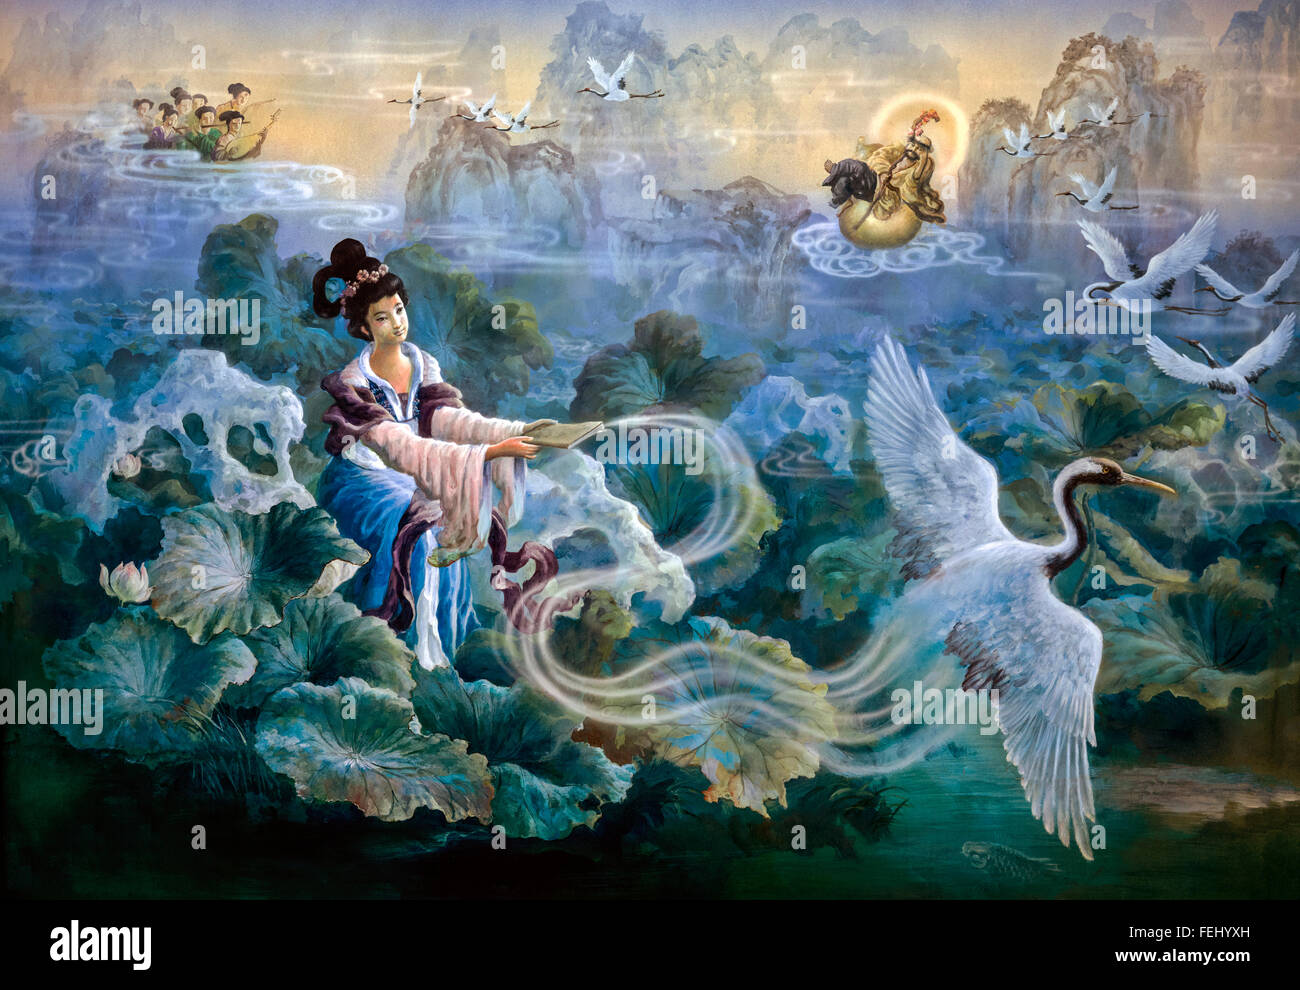 Chinese wall art painting. Surreal - Stock Image